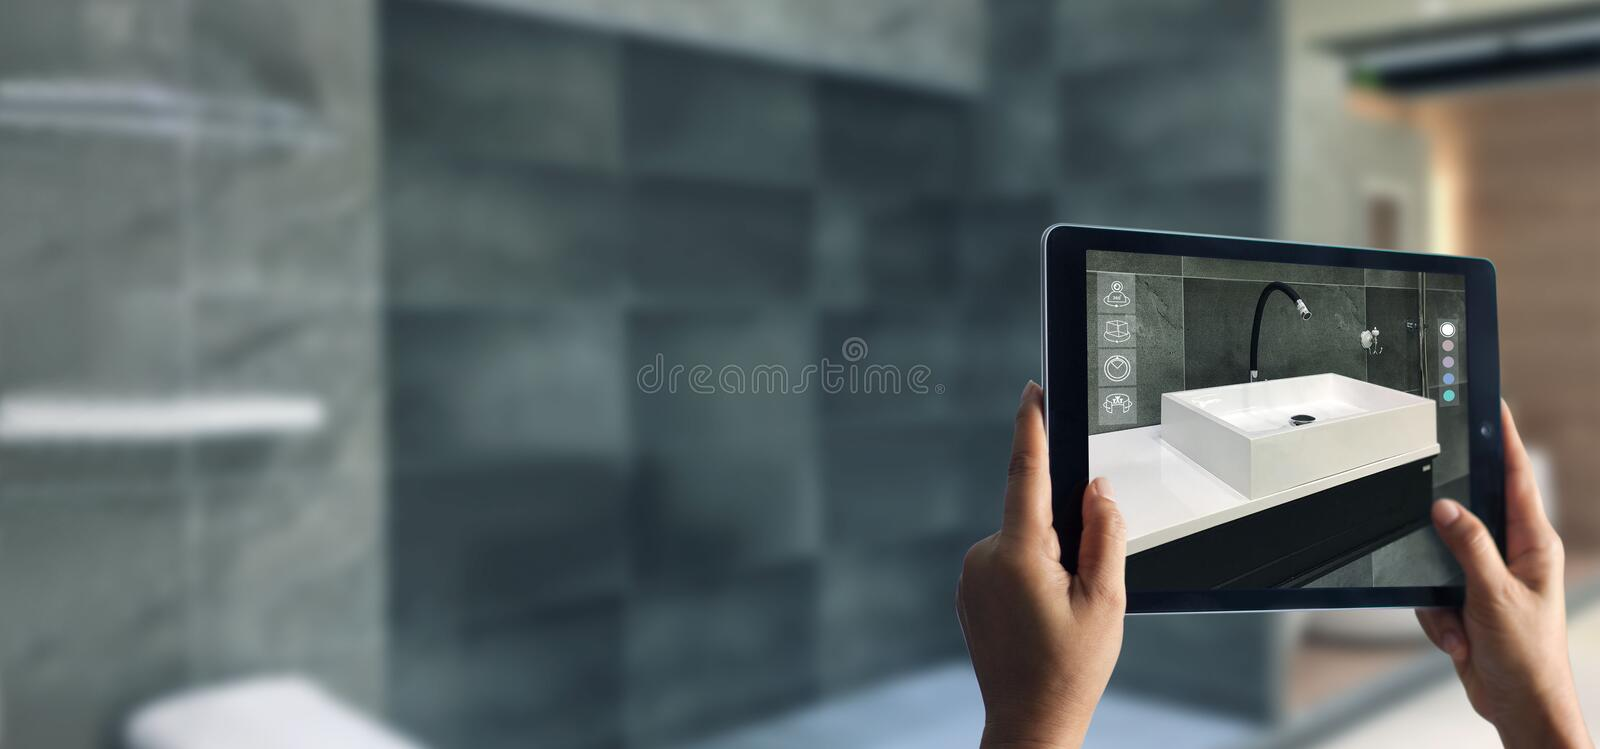 Augmented Reality bathroom planning. Sanitary ware. Hand holding digital tablet in real home background. AR application. A new way to experience products royalty free stock photos